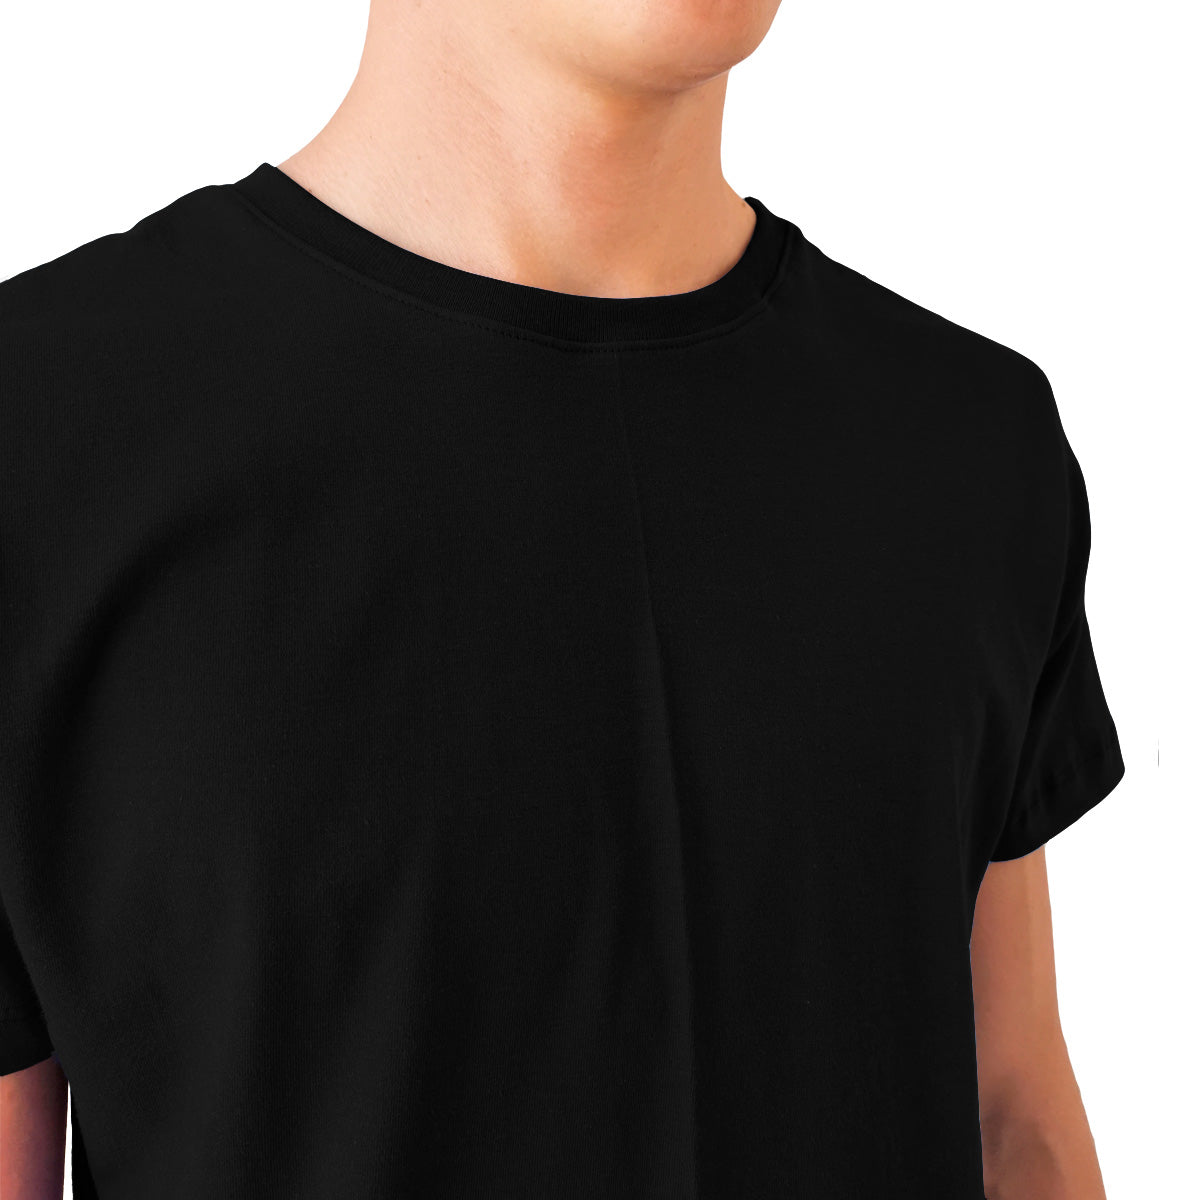 Playera Long Fit Swag Recta Color Blanco y Negro